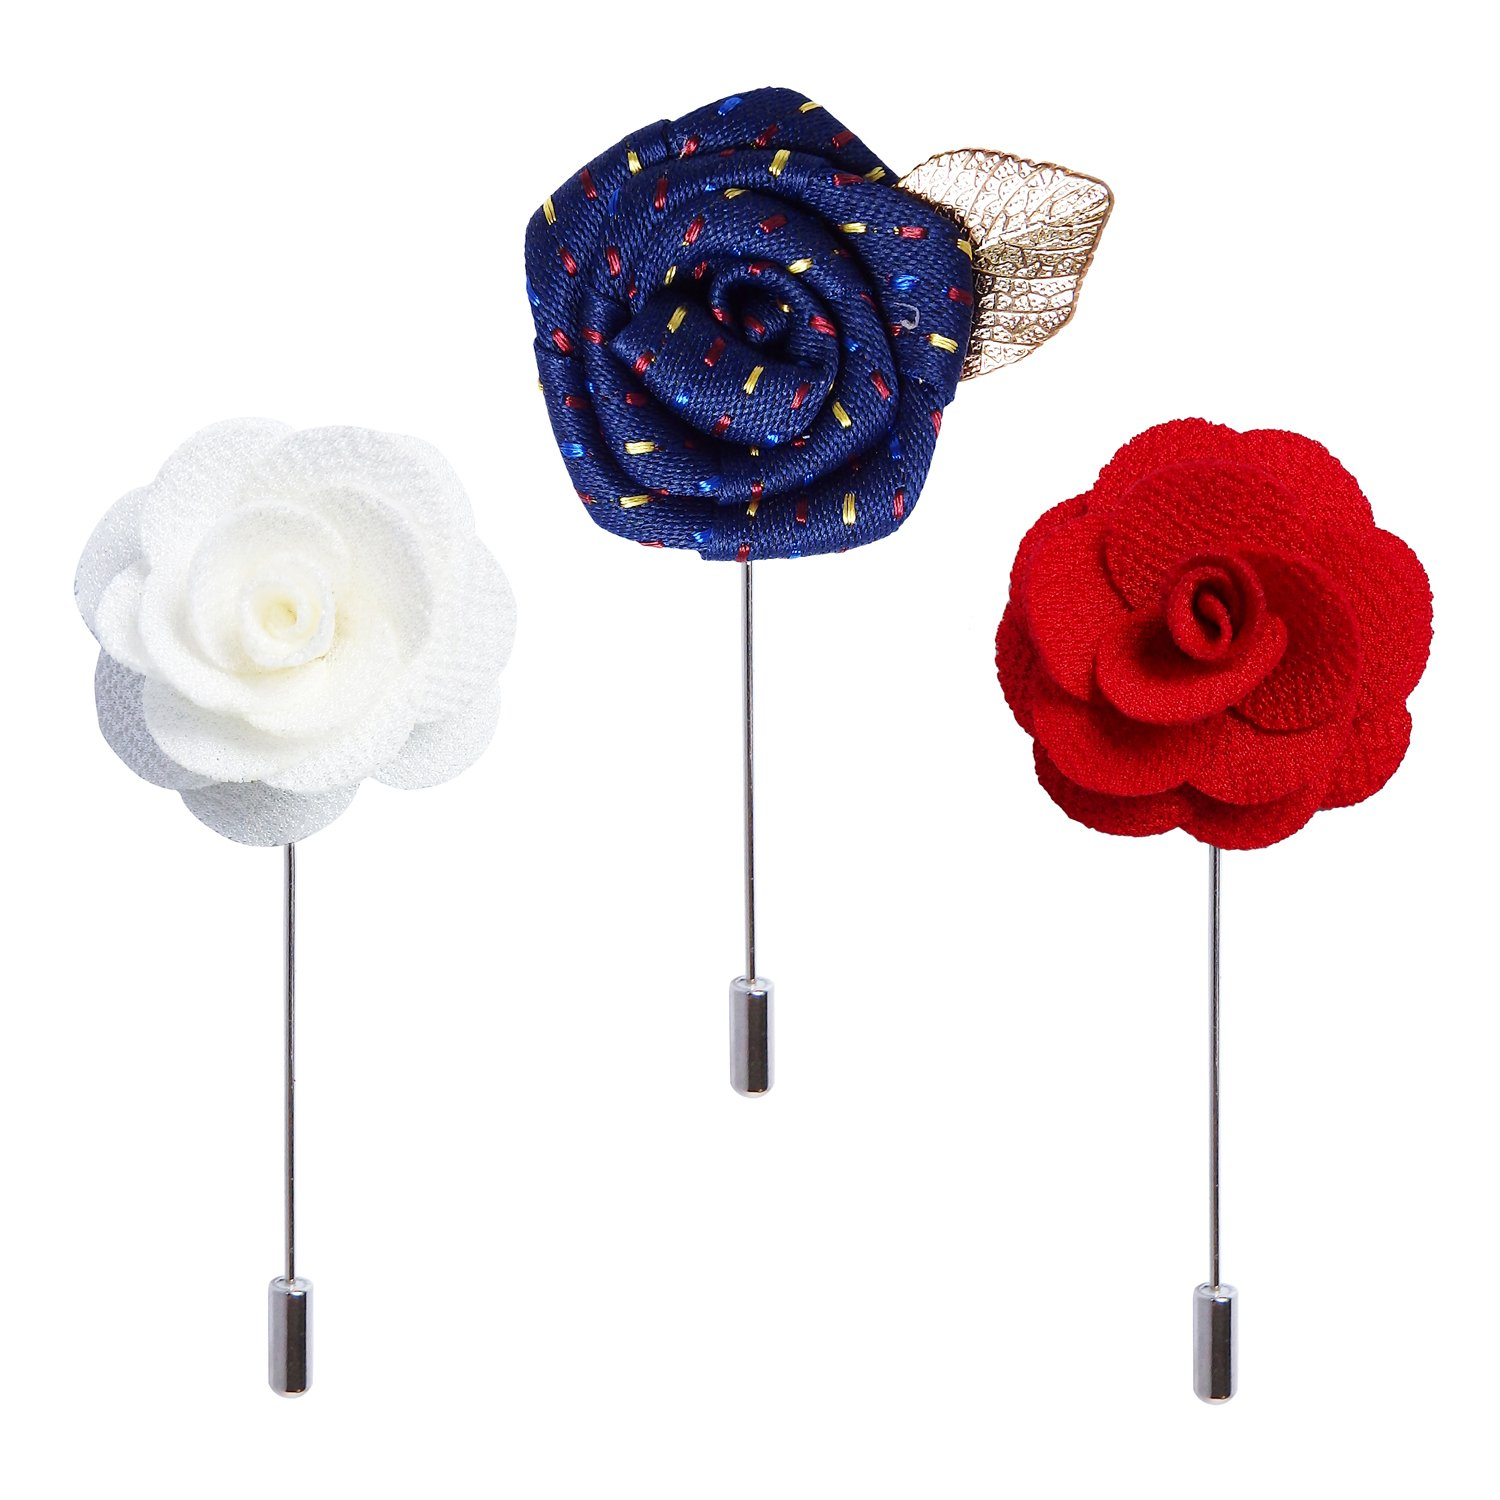 RareLove 3pcs Wedding Rose Boutonniere Lapel Pins Set For Men Flower White Red Blue MBR103